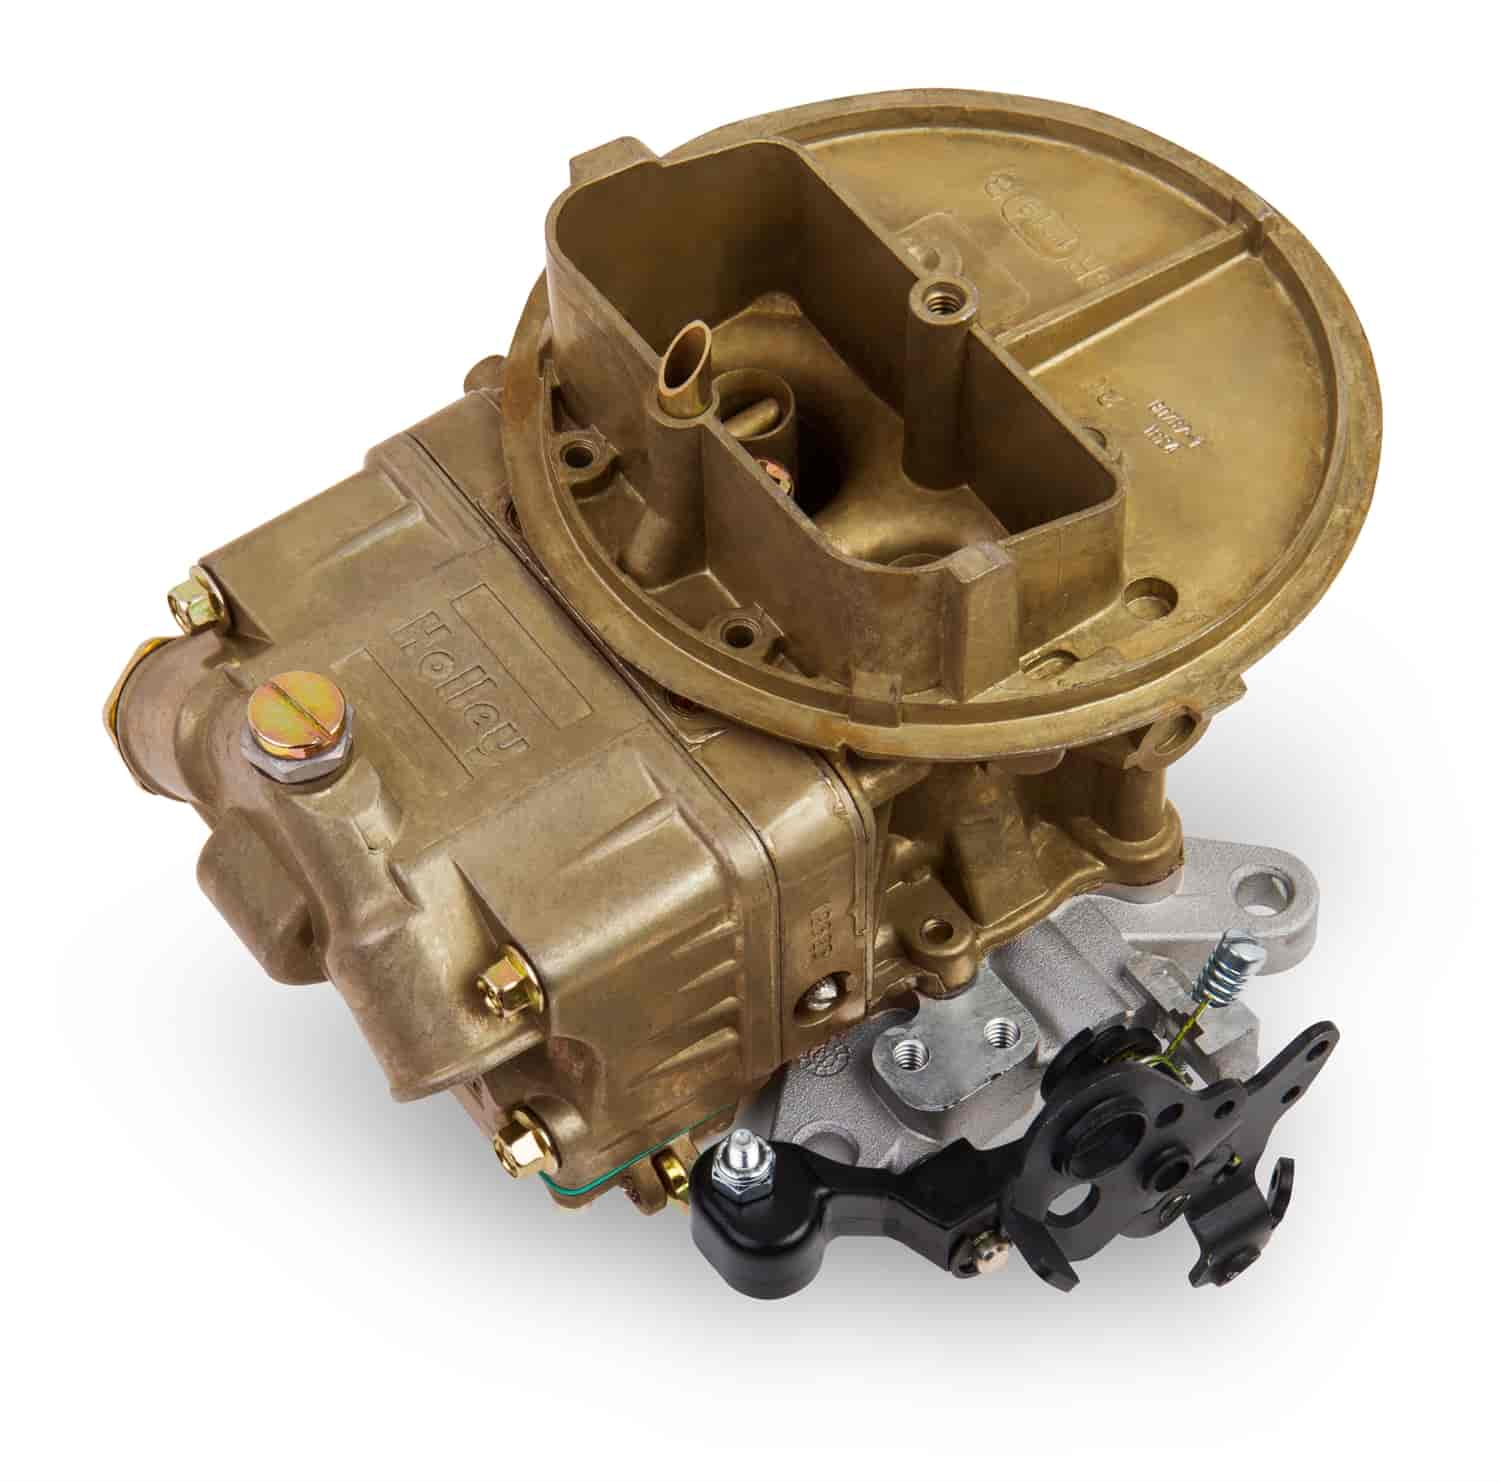 Holley 0-80787-1             - Holley - Keith Dorton Signature Series Carburetors